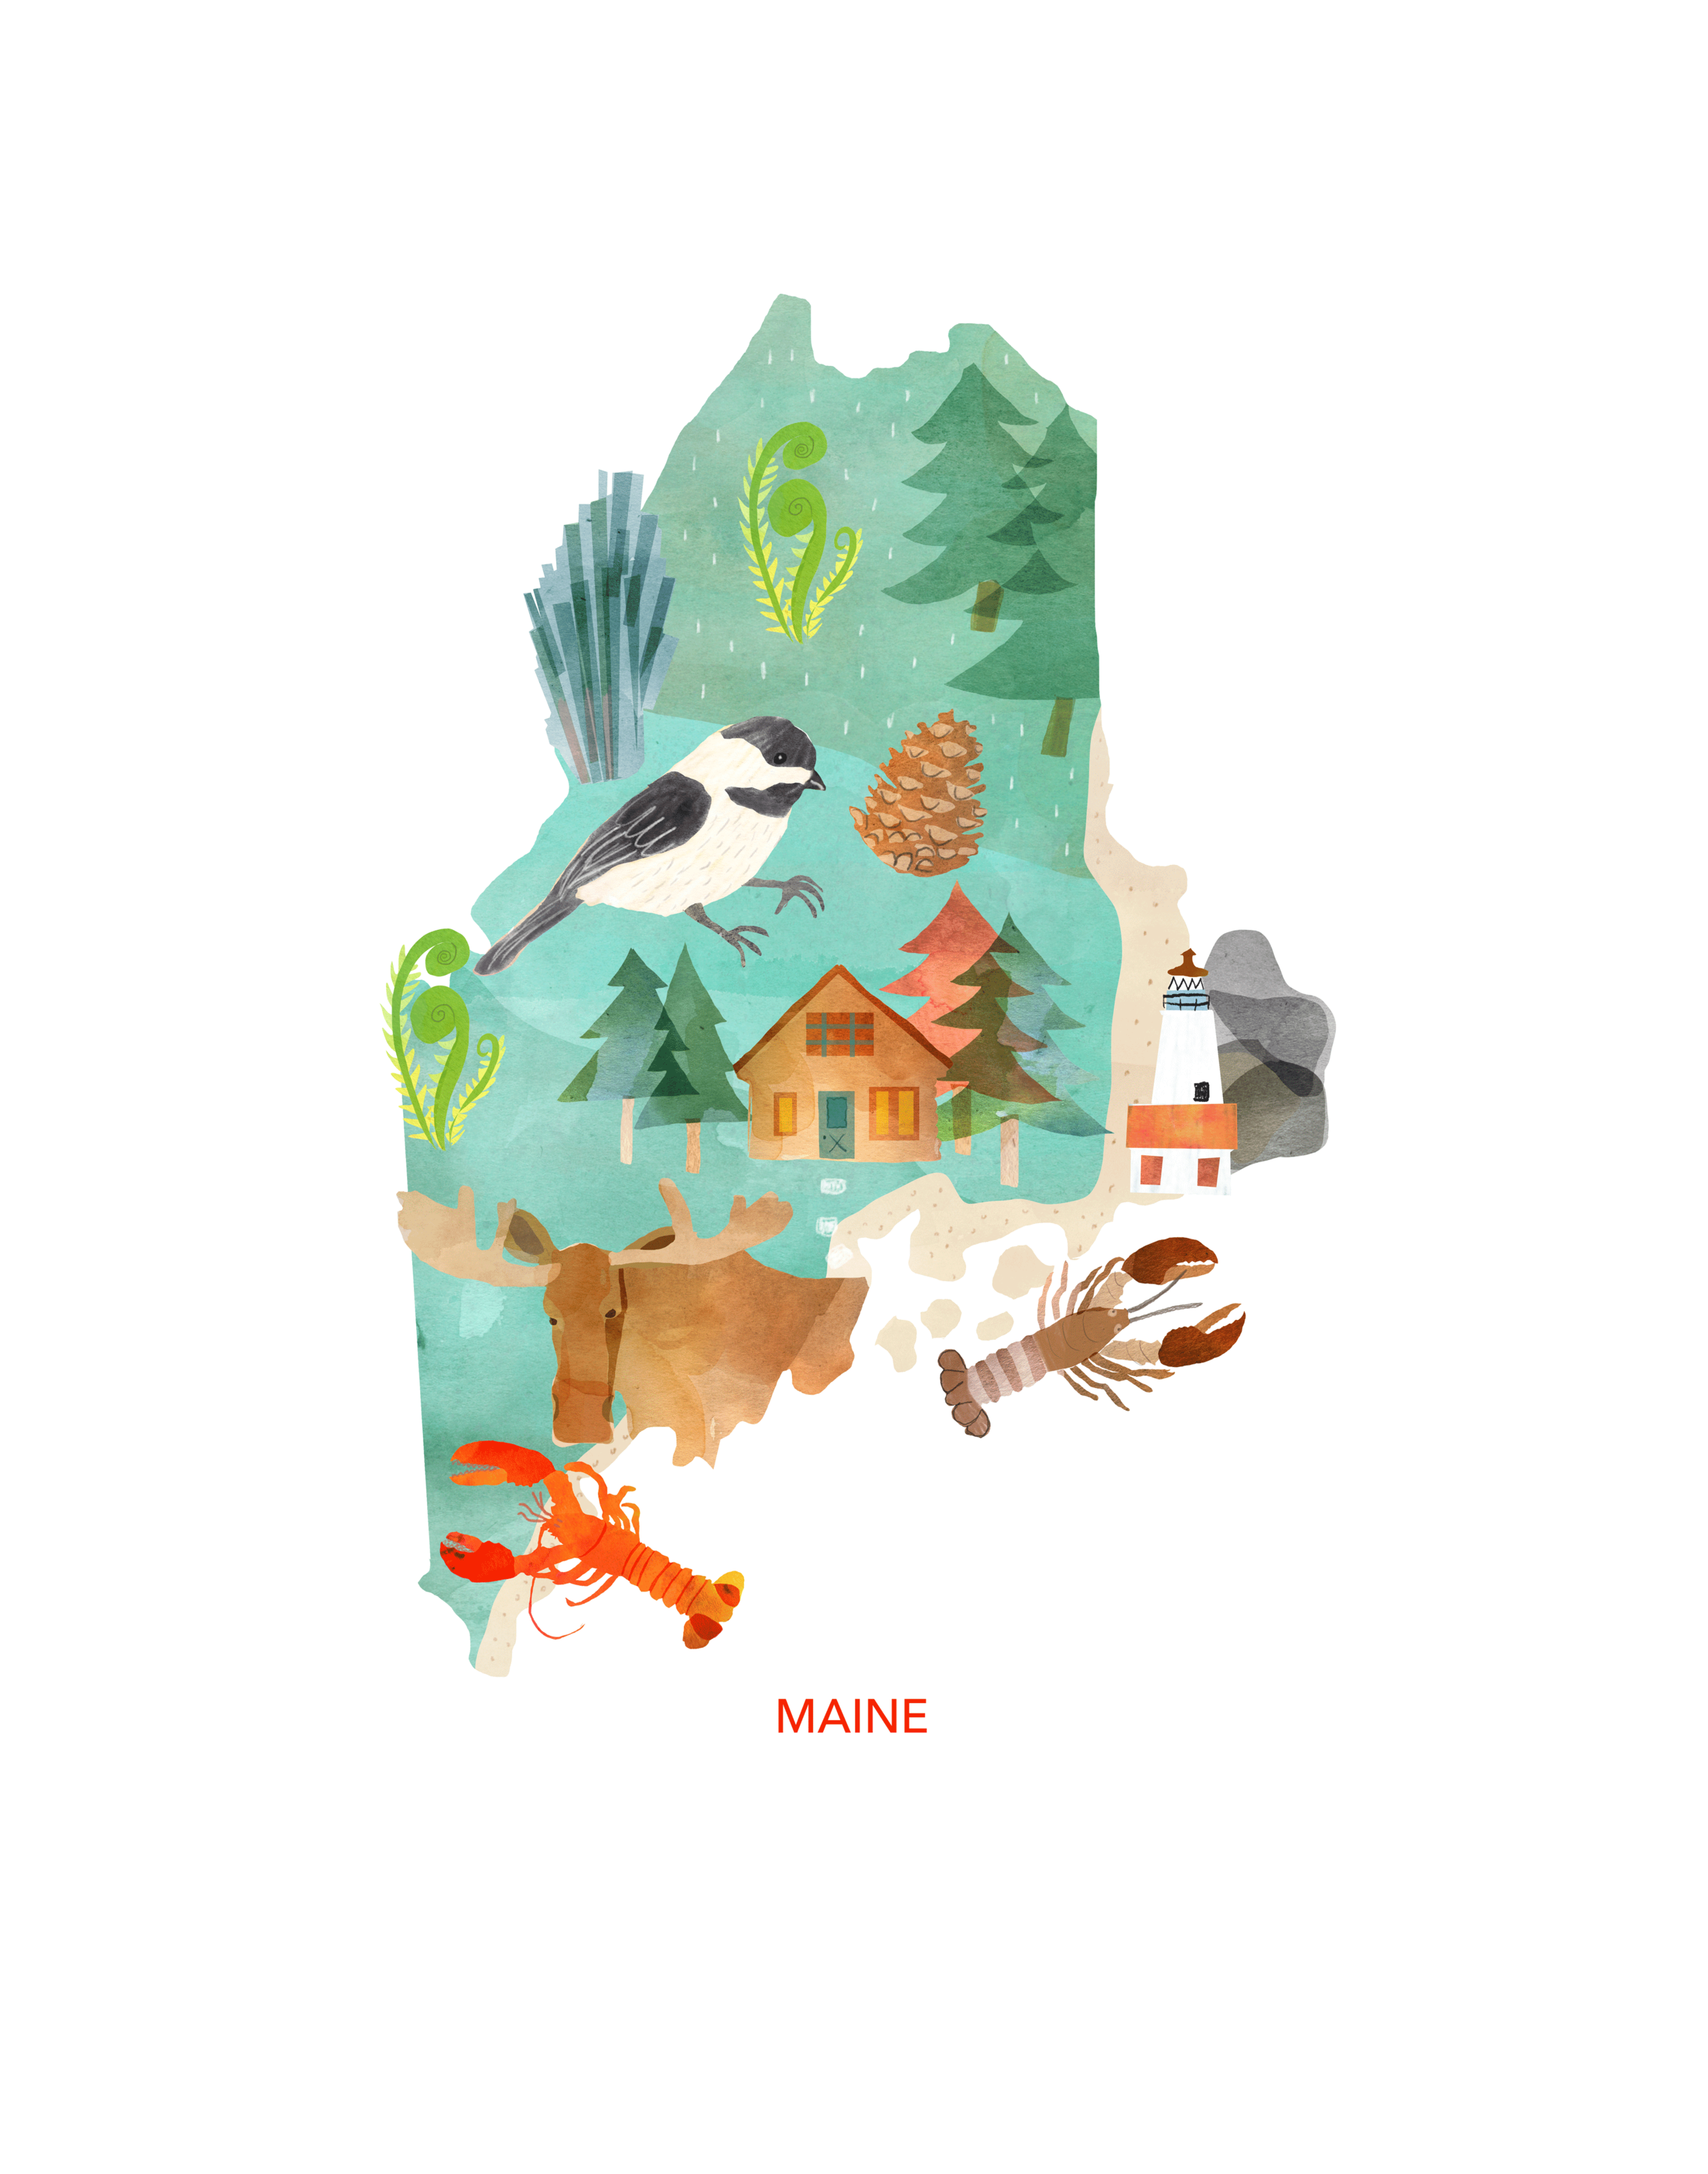 Maine_11x14.png